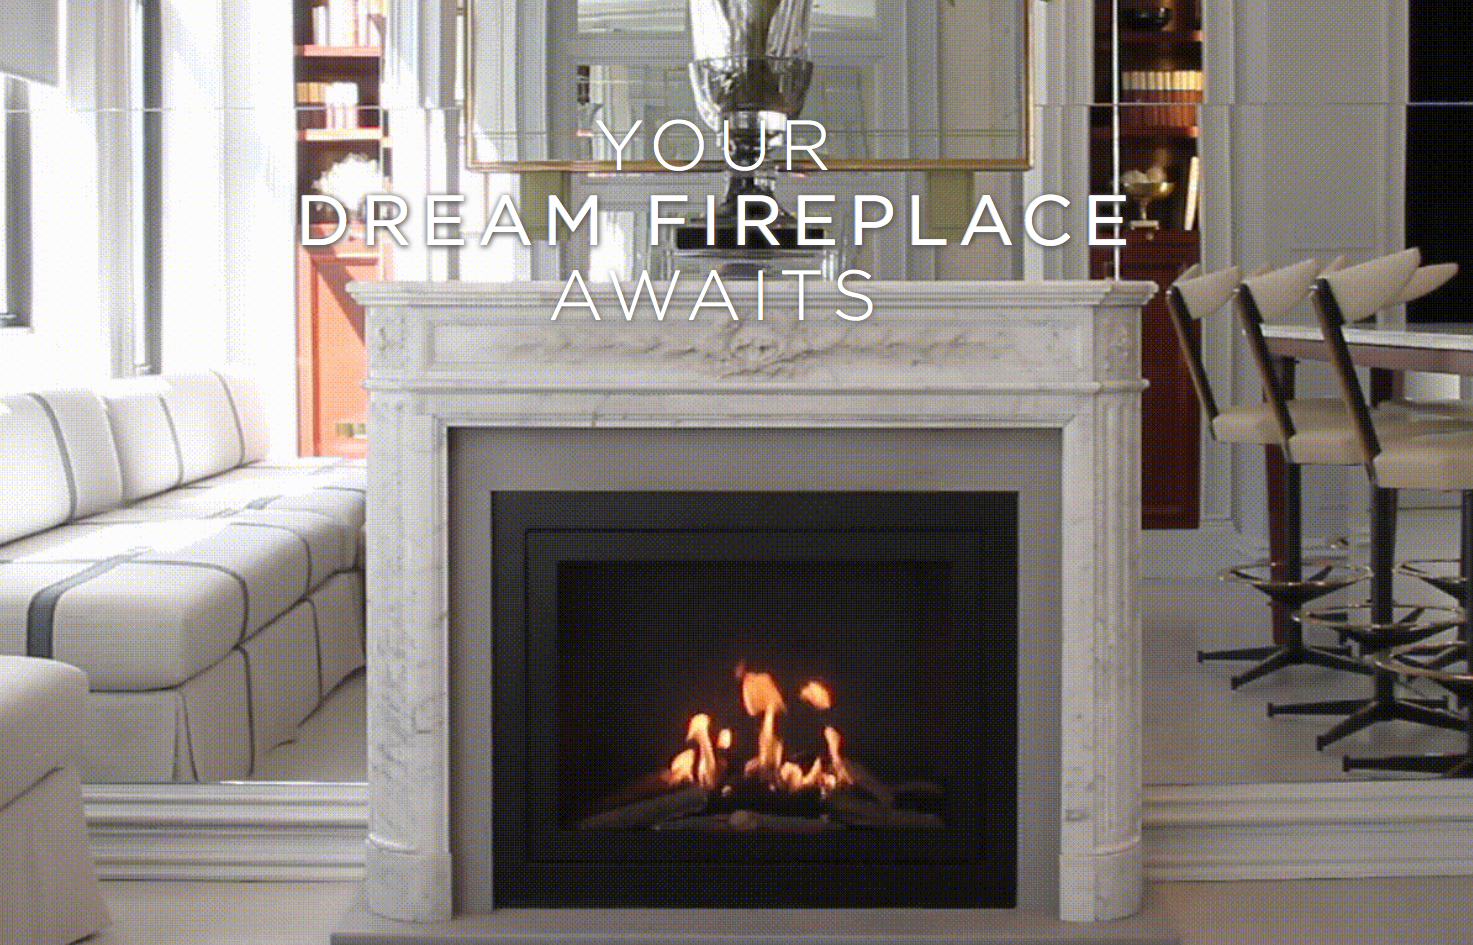 HEARTHCABINET VENTLESS FIREPLACES